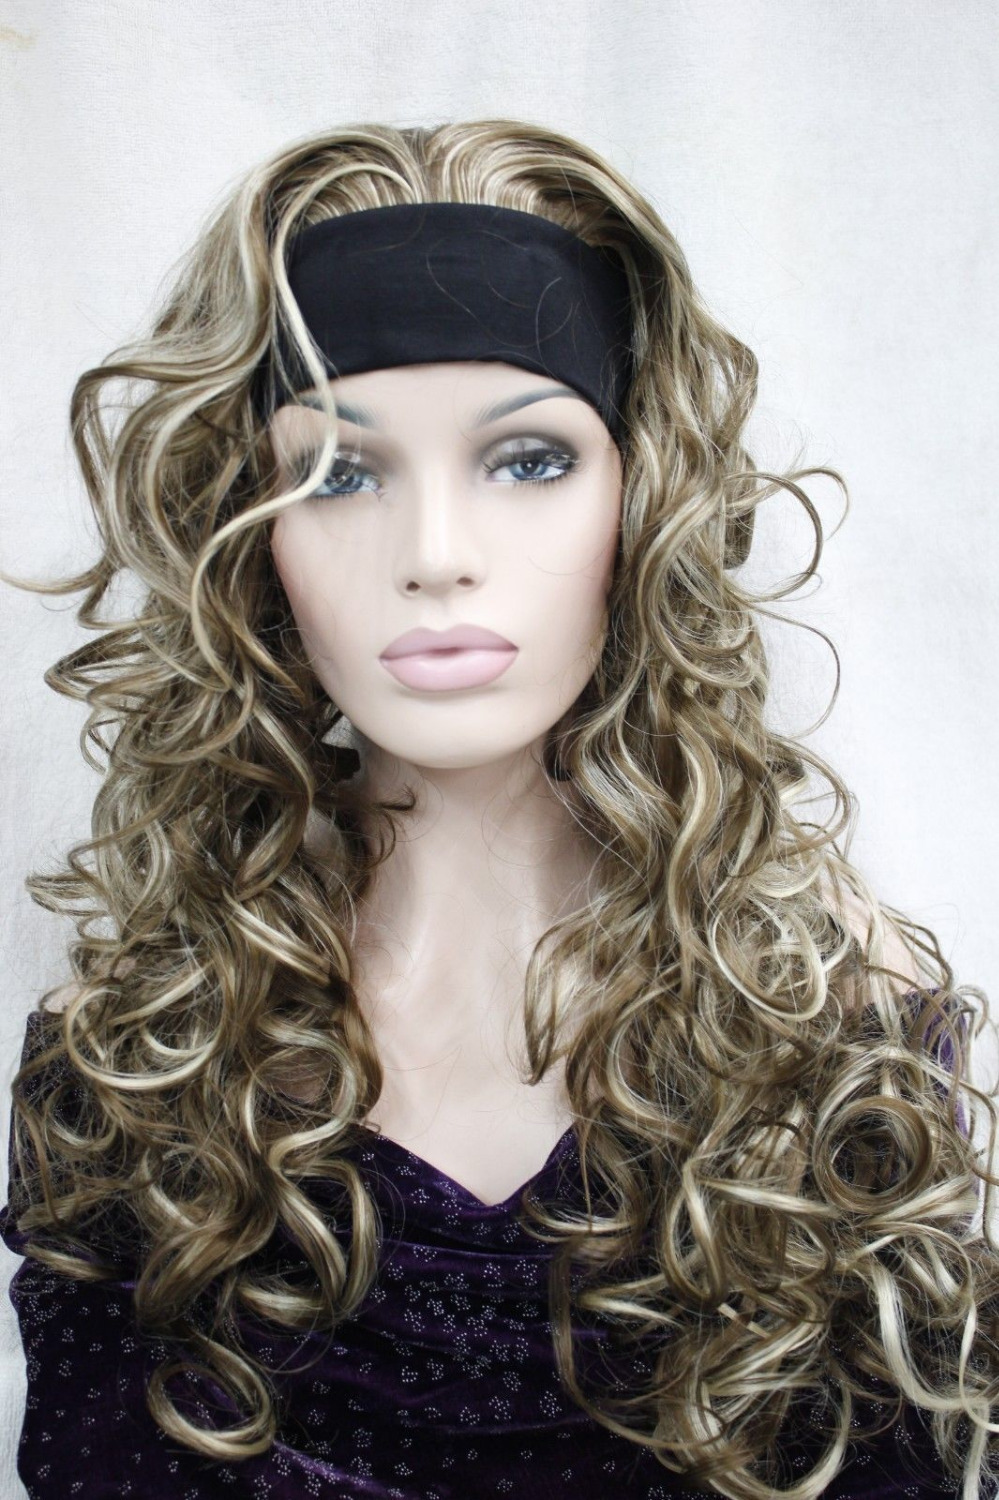 Xiuli 0002643 Cute 34 Wig With Headband Light Brown With Blonde Highlight Curly Long Half Wigs On Aliexpress Alibaba Group